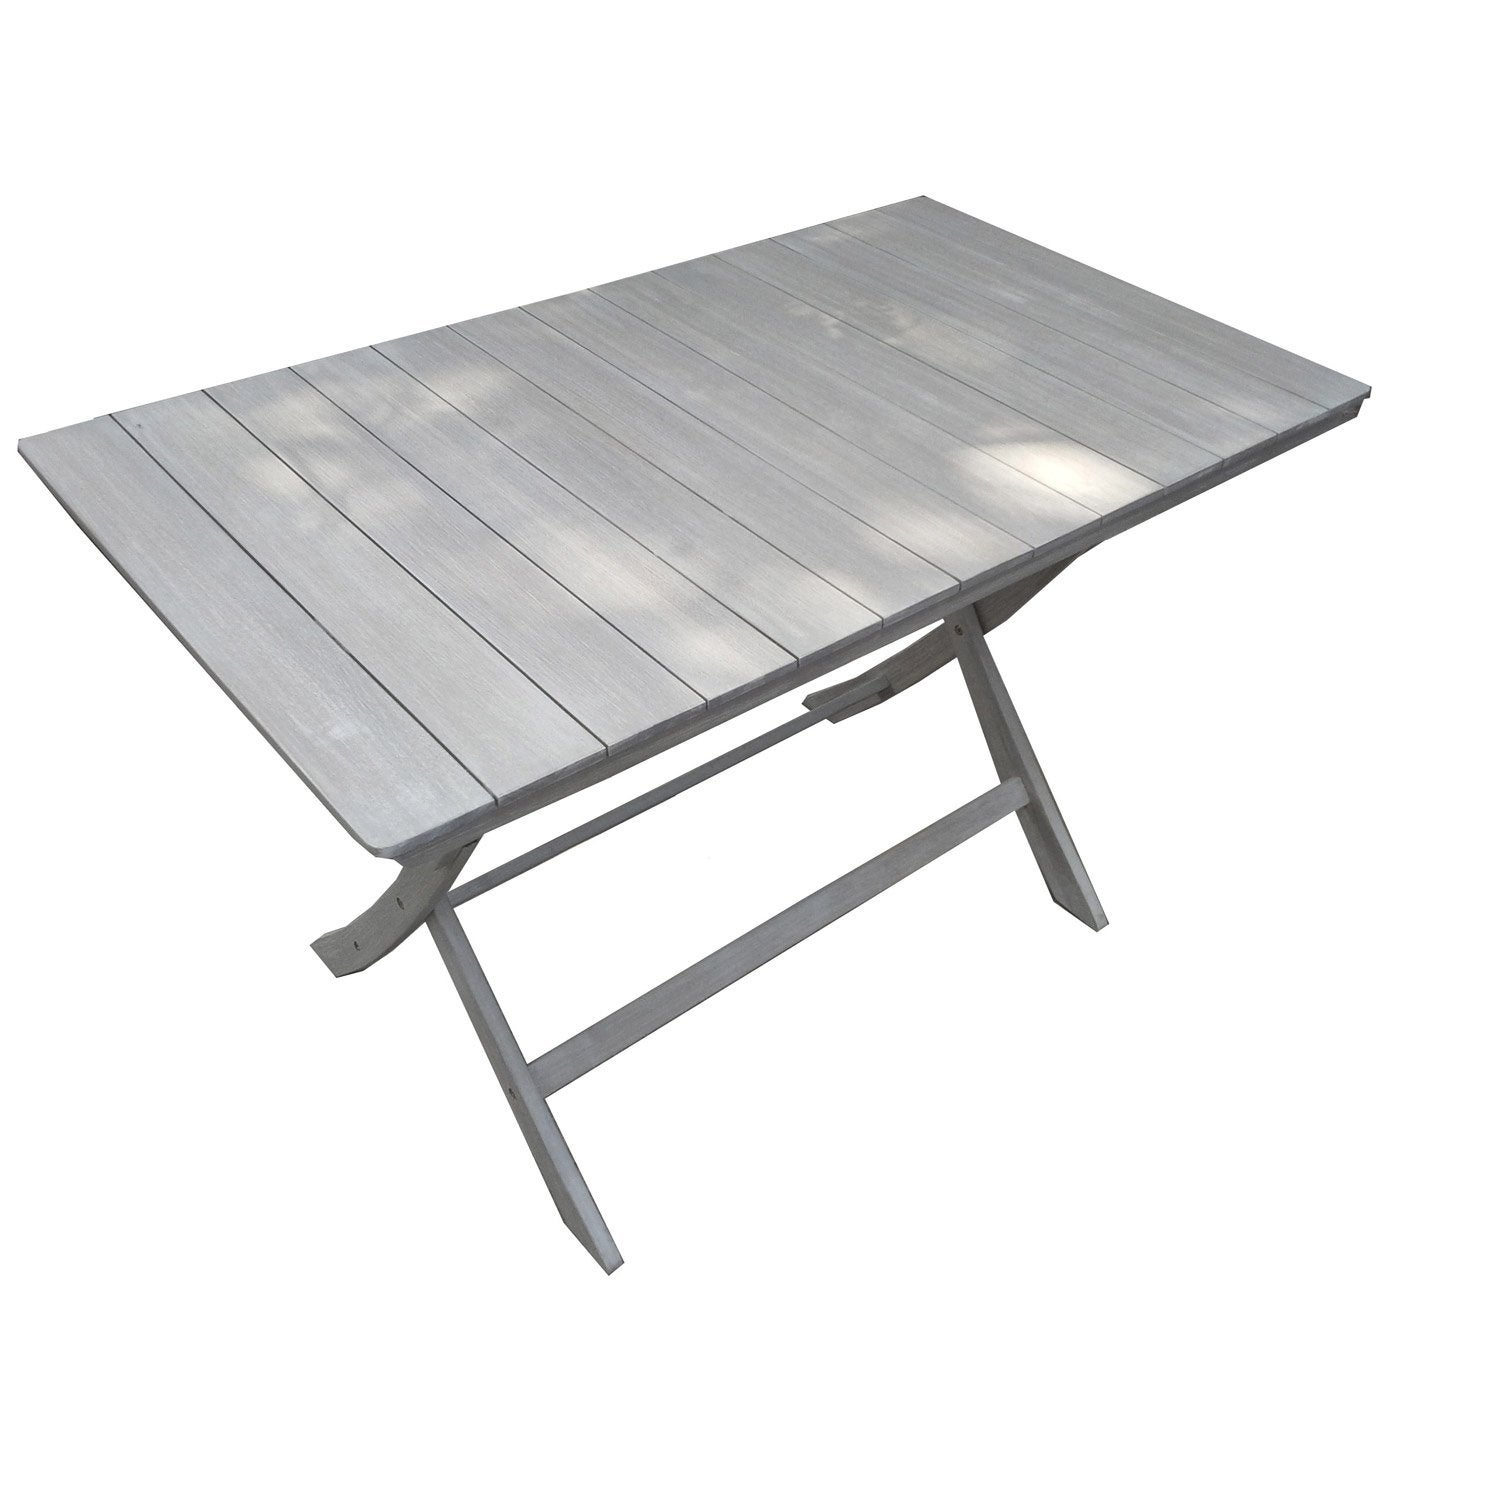 Table de jardin naterial portofino rectangulaire gris 4 - Table de jardin de couleur ...